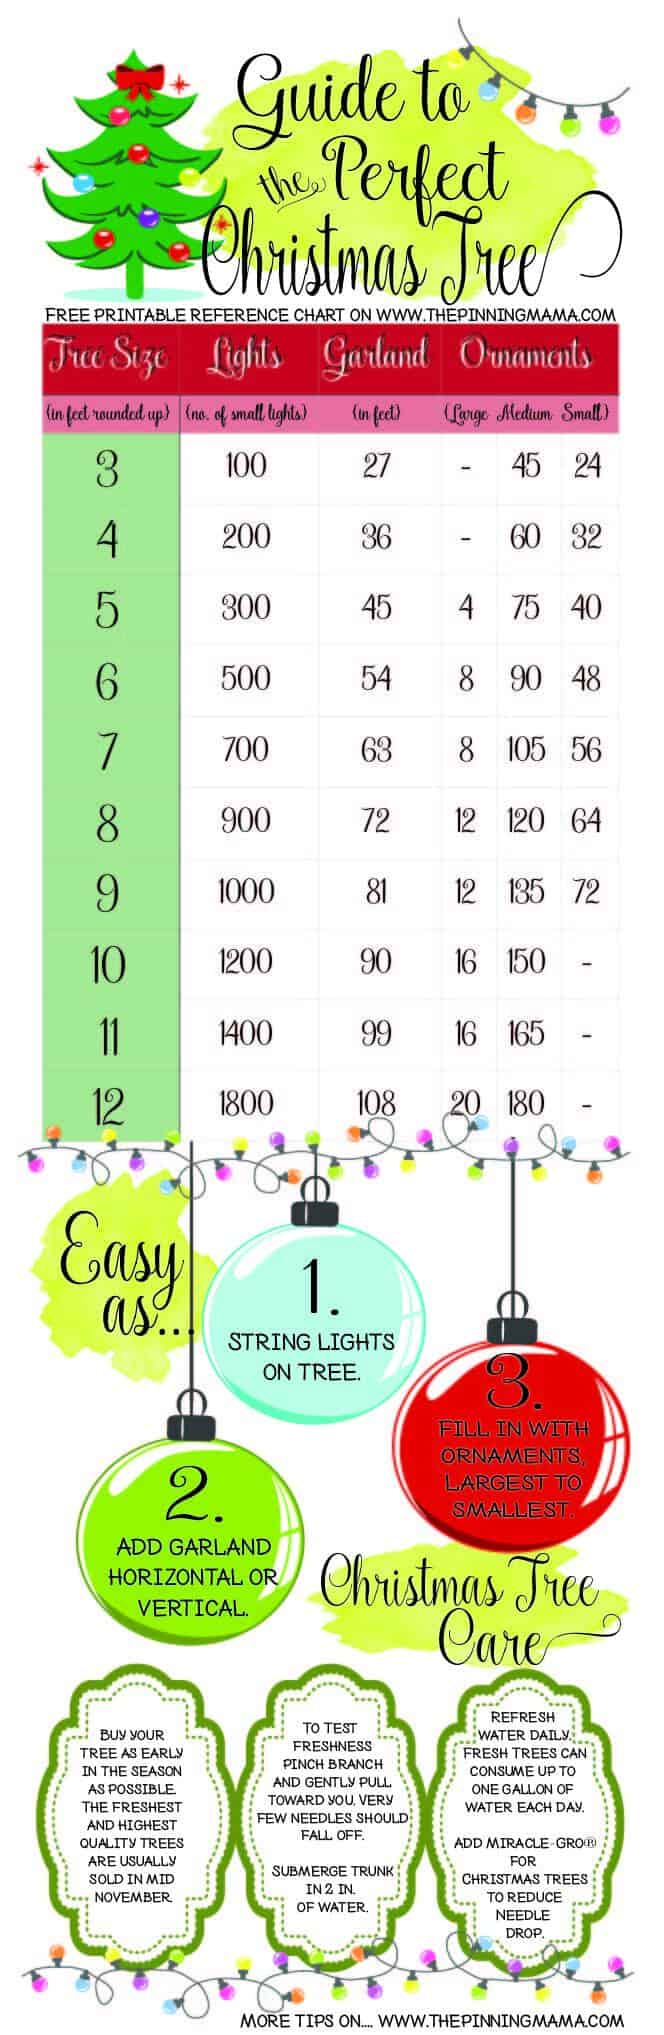 Keeping this handy! Great reference sheet for Christmas Tree decorating! How much garland do you need? How many lights do you need? How many ornaments do you need? All the answers are right here!